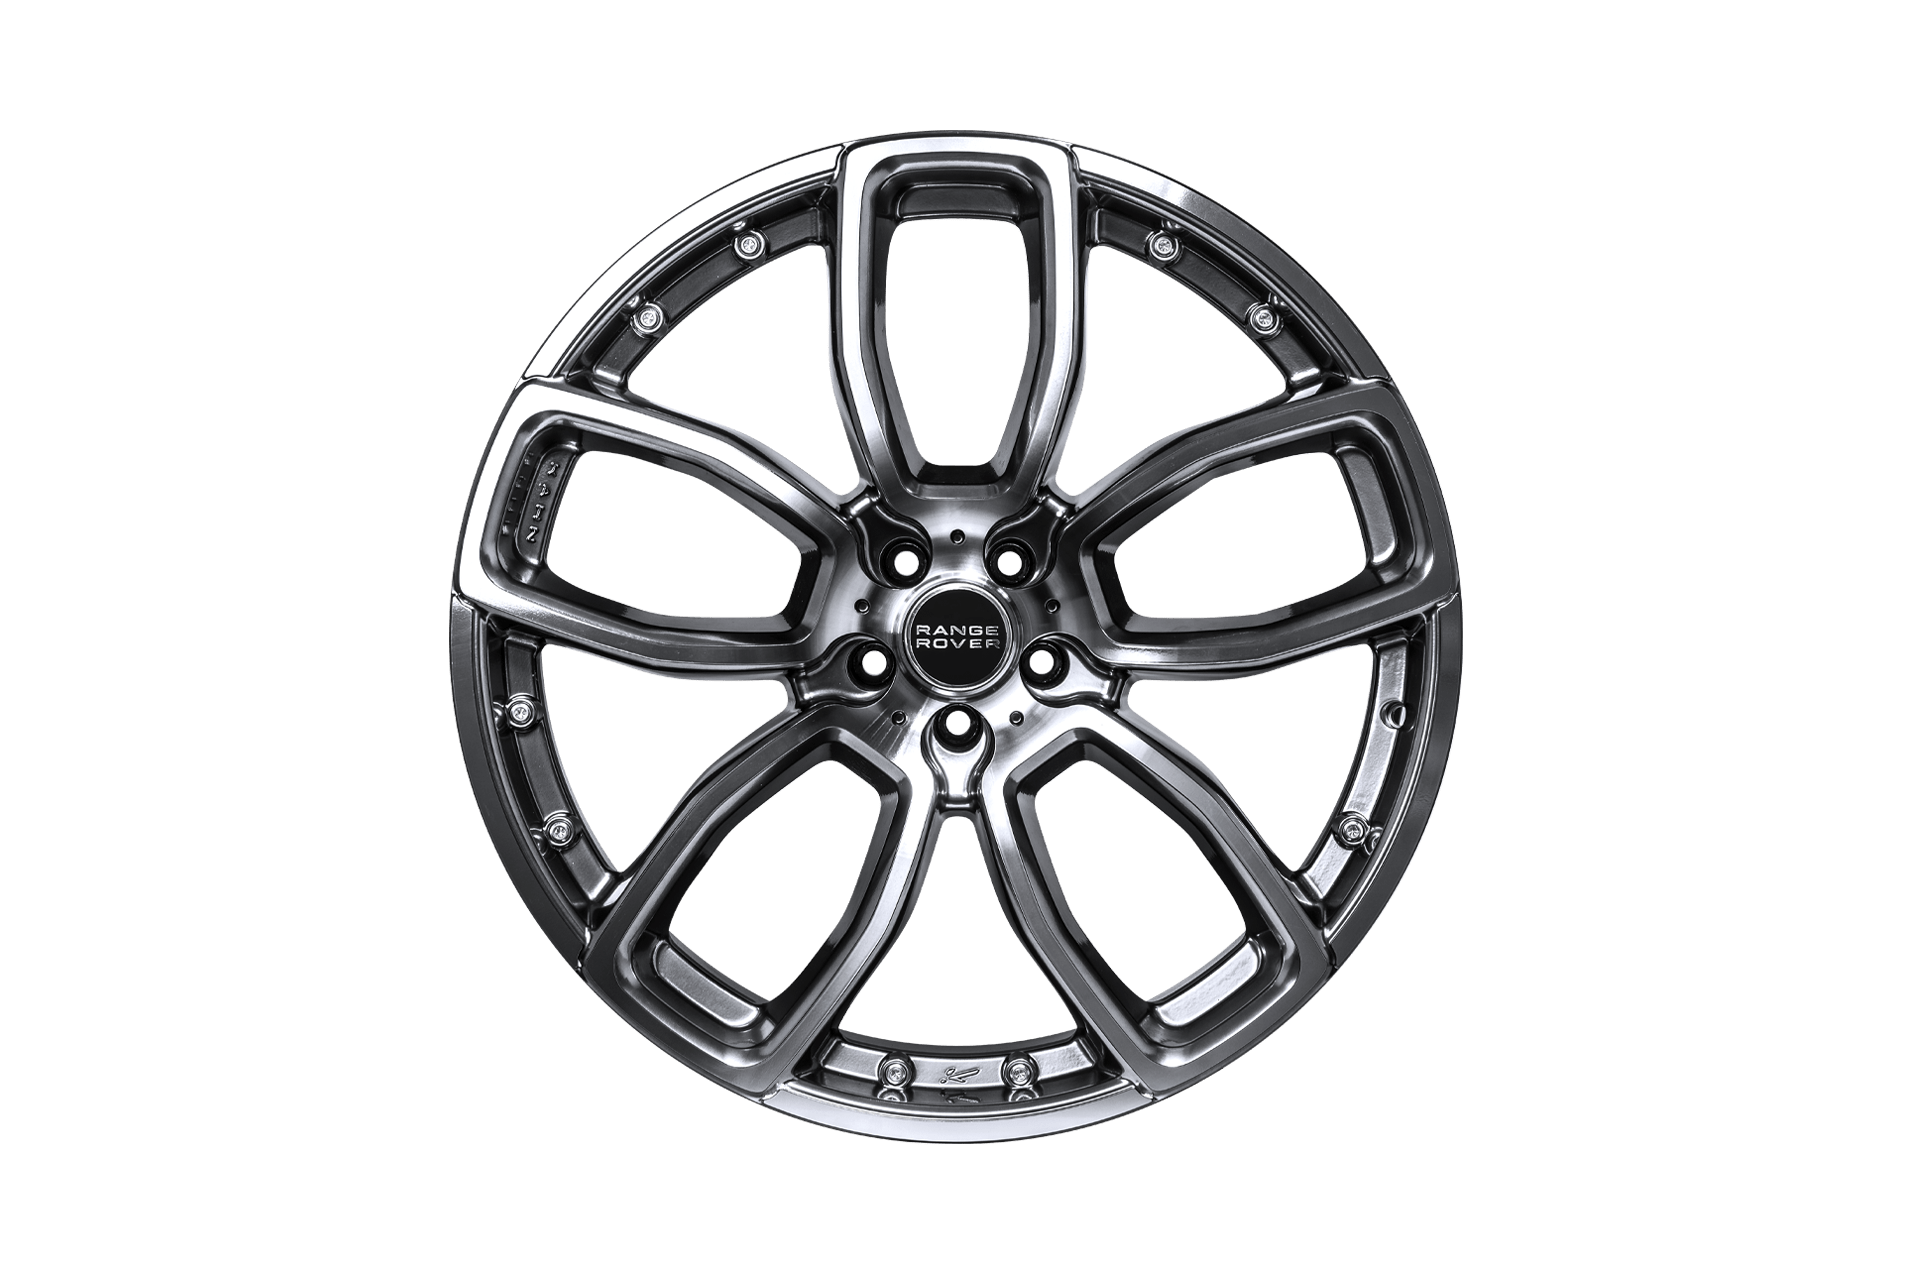 Range Rover Sport Svr (2015-2018) 600Le Light Alloy Wheels by Kahn - Image 3162